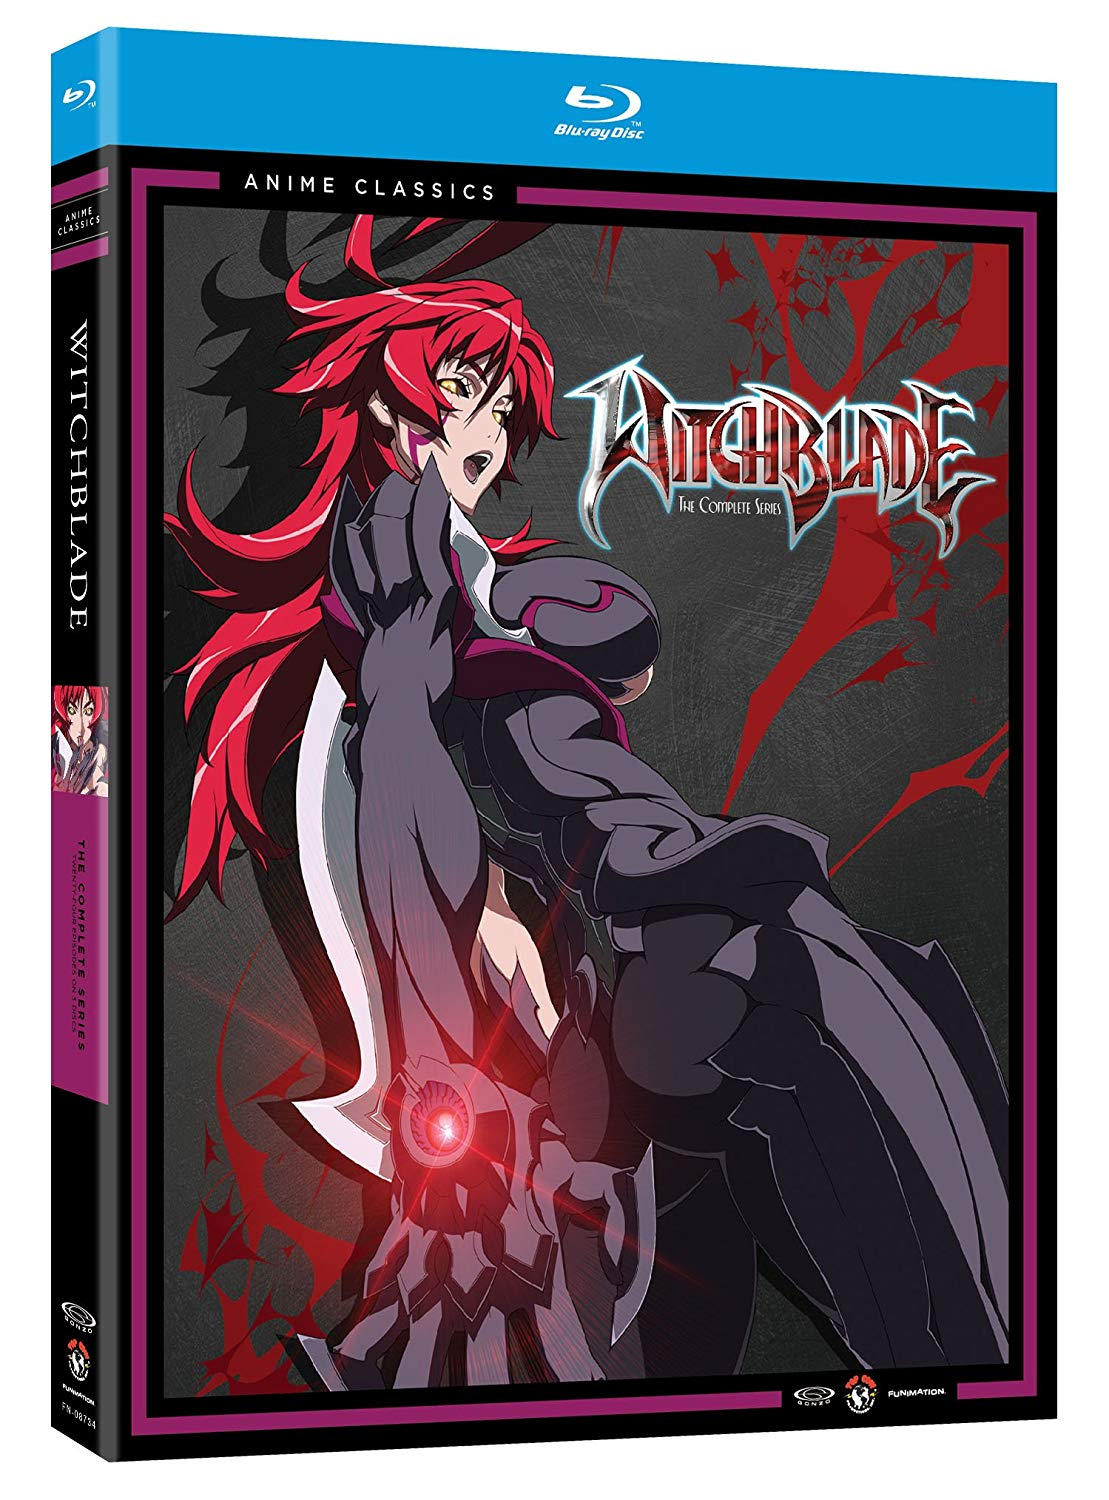 Anime cover: Witchblade